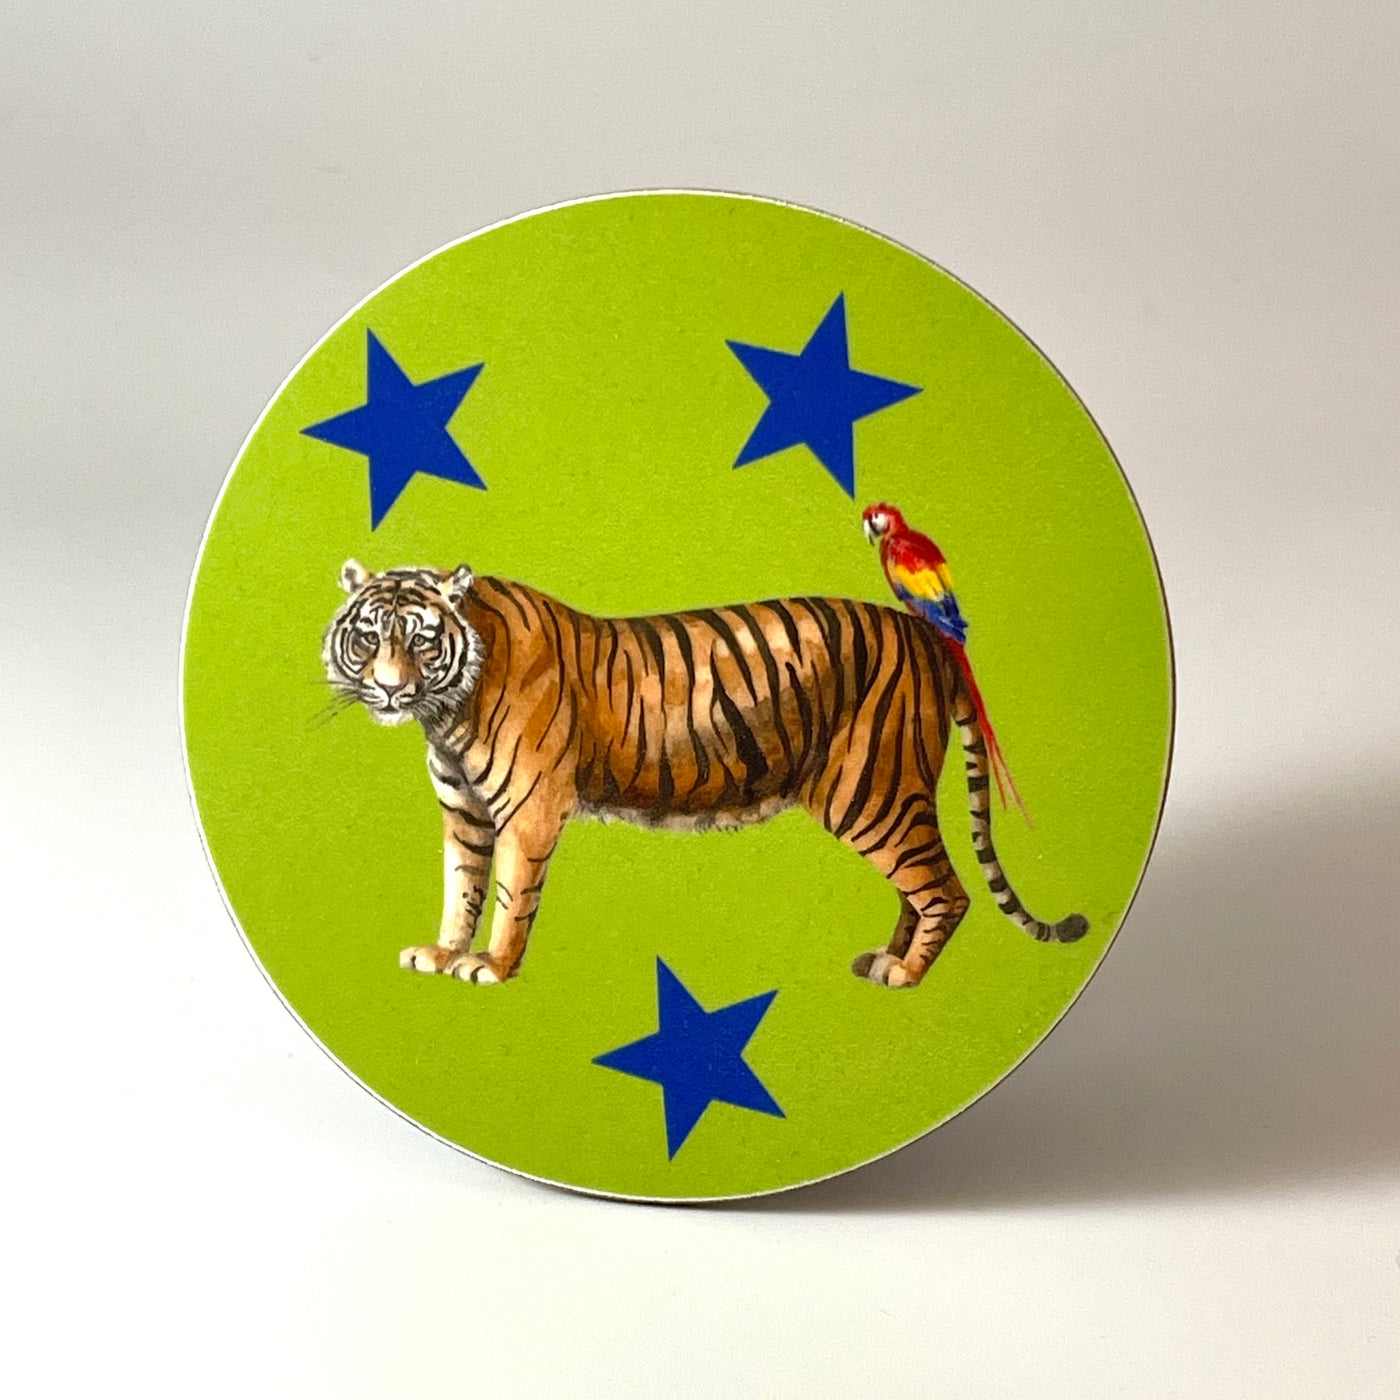 Tiger and Parrot Terry and Polly Coaster